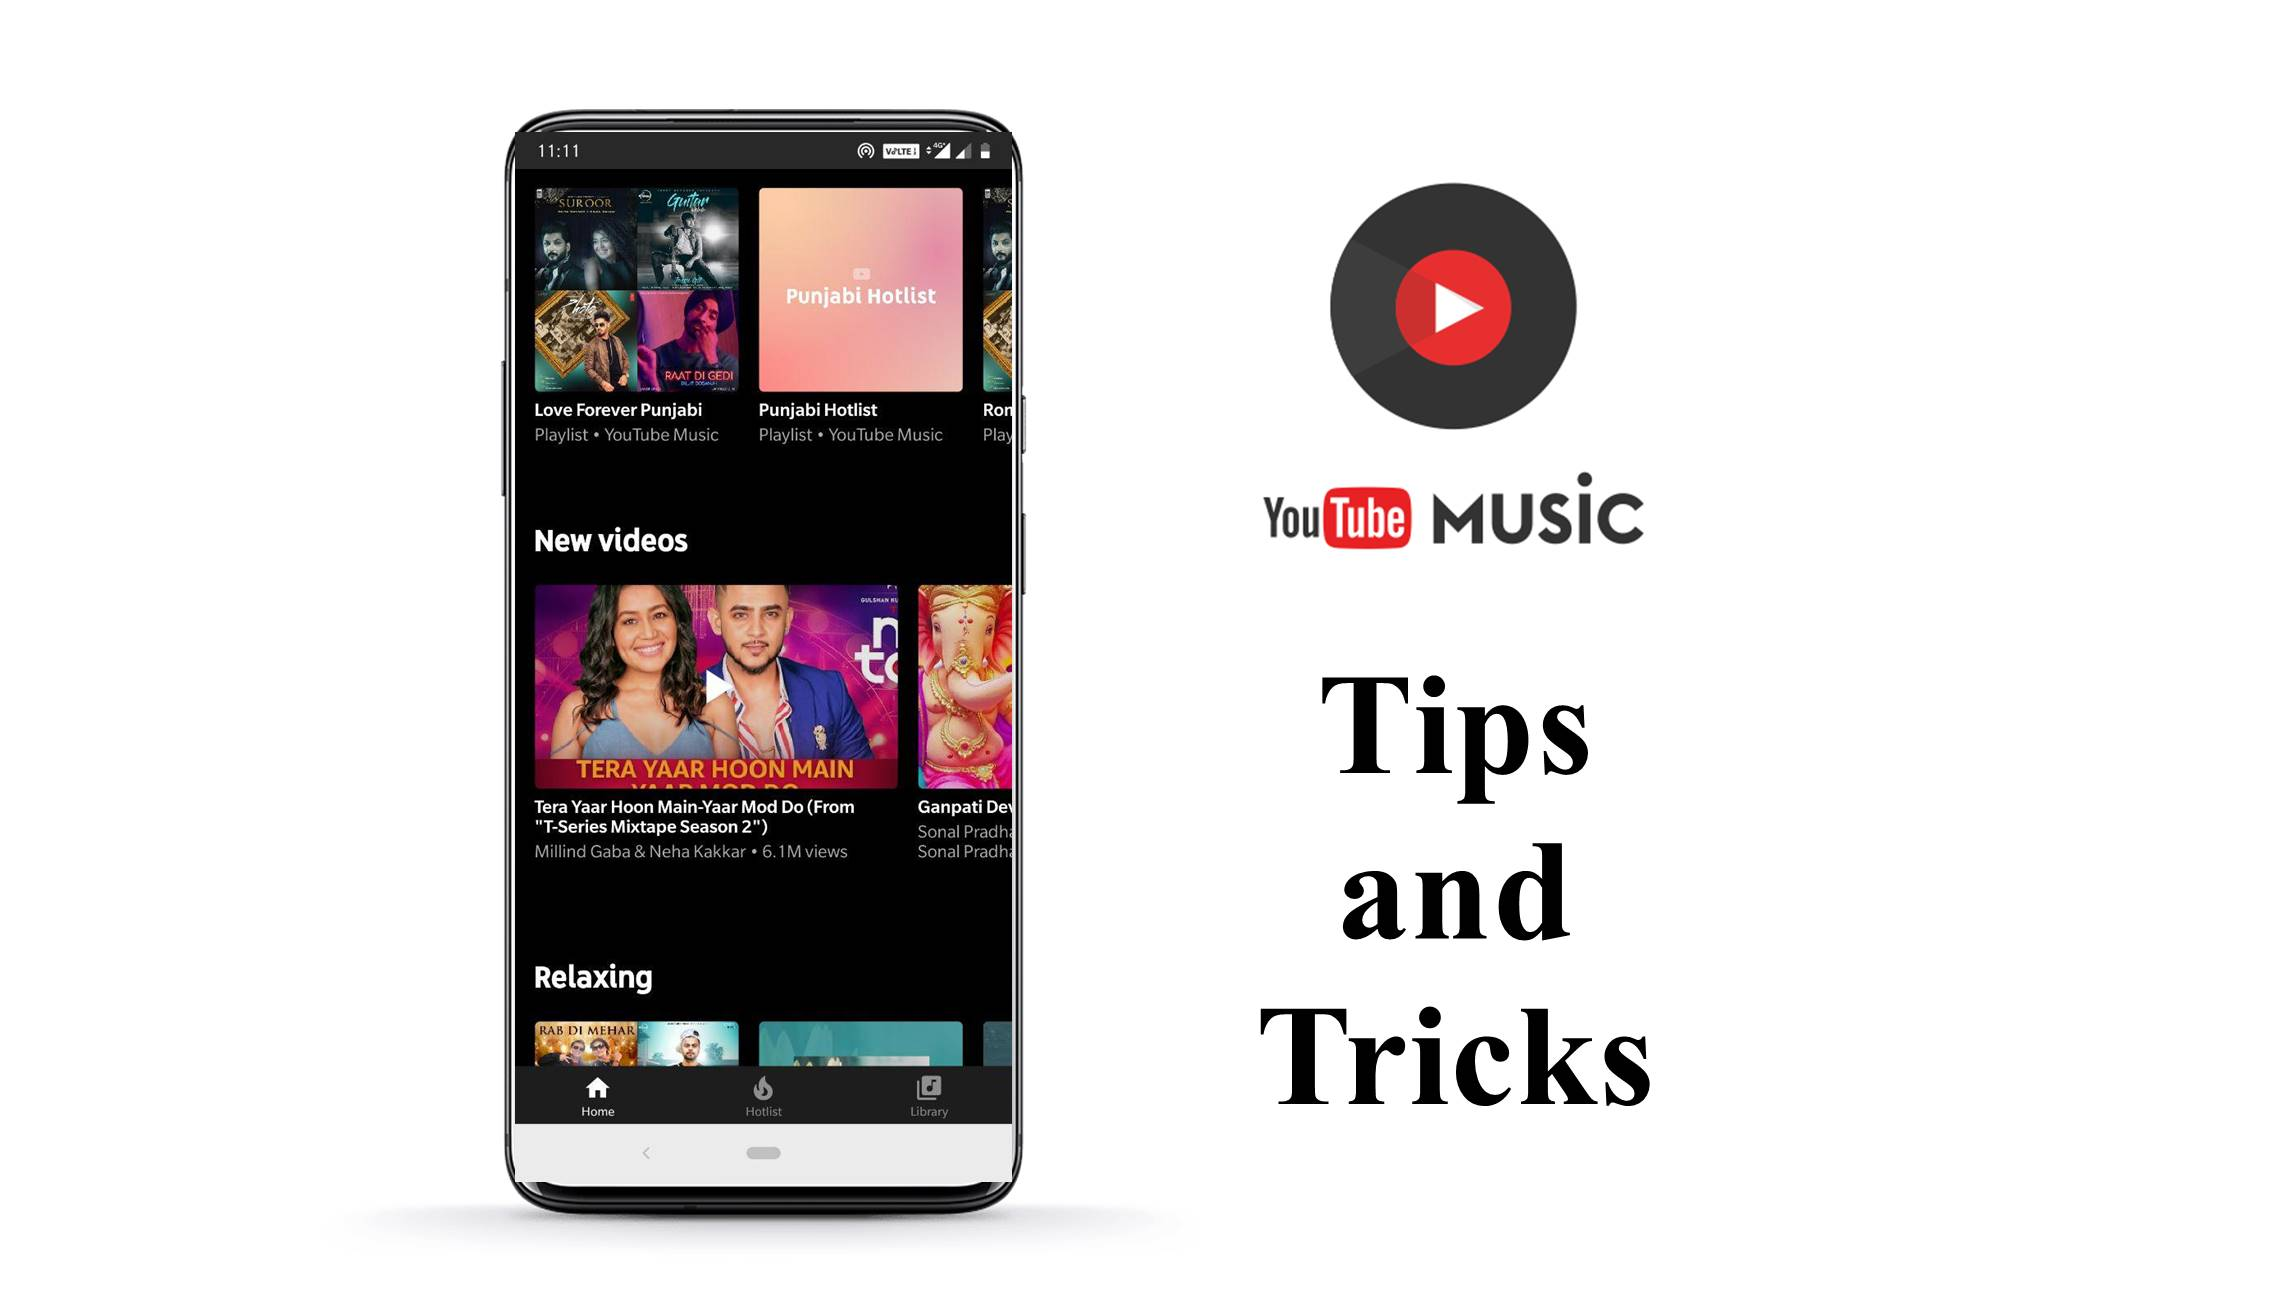 YouTube Music App Tips and Tricks - Android Result